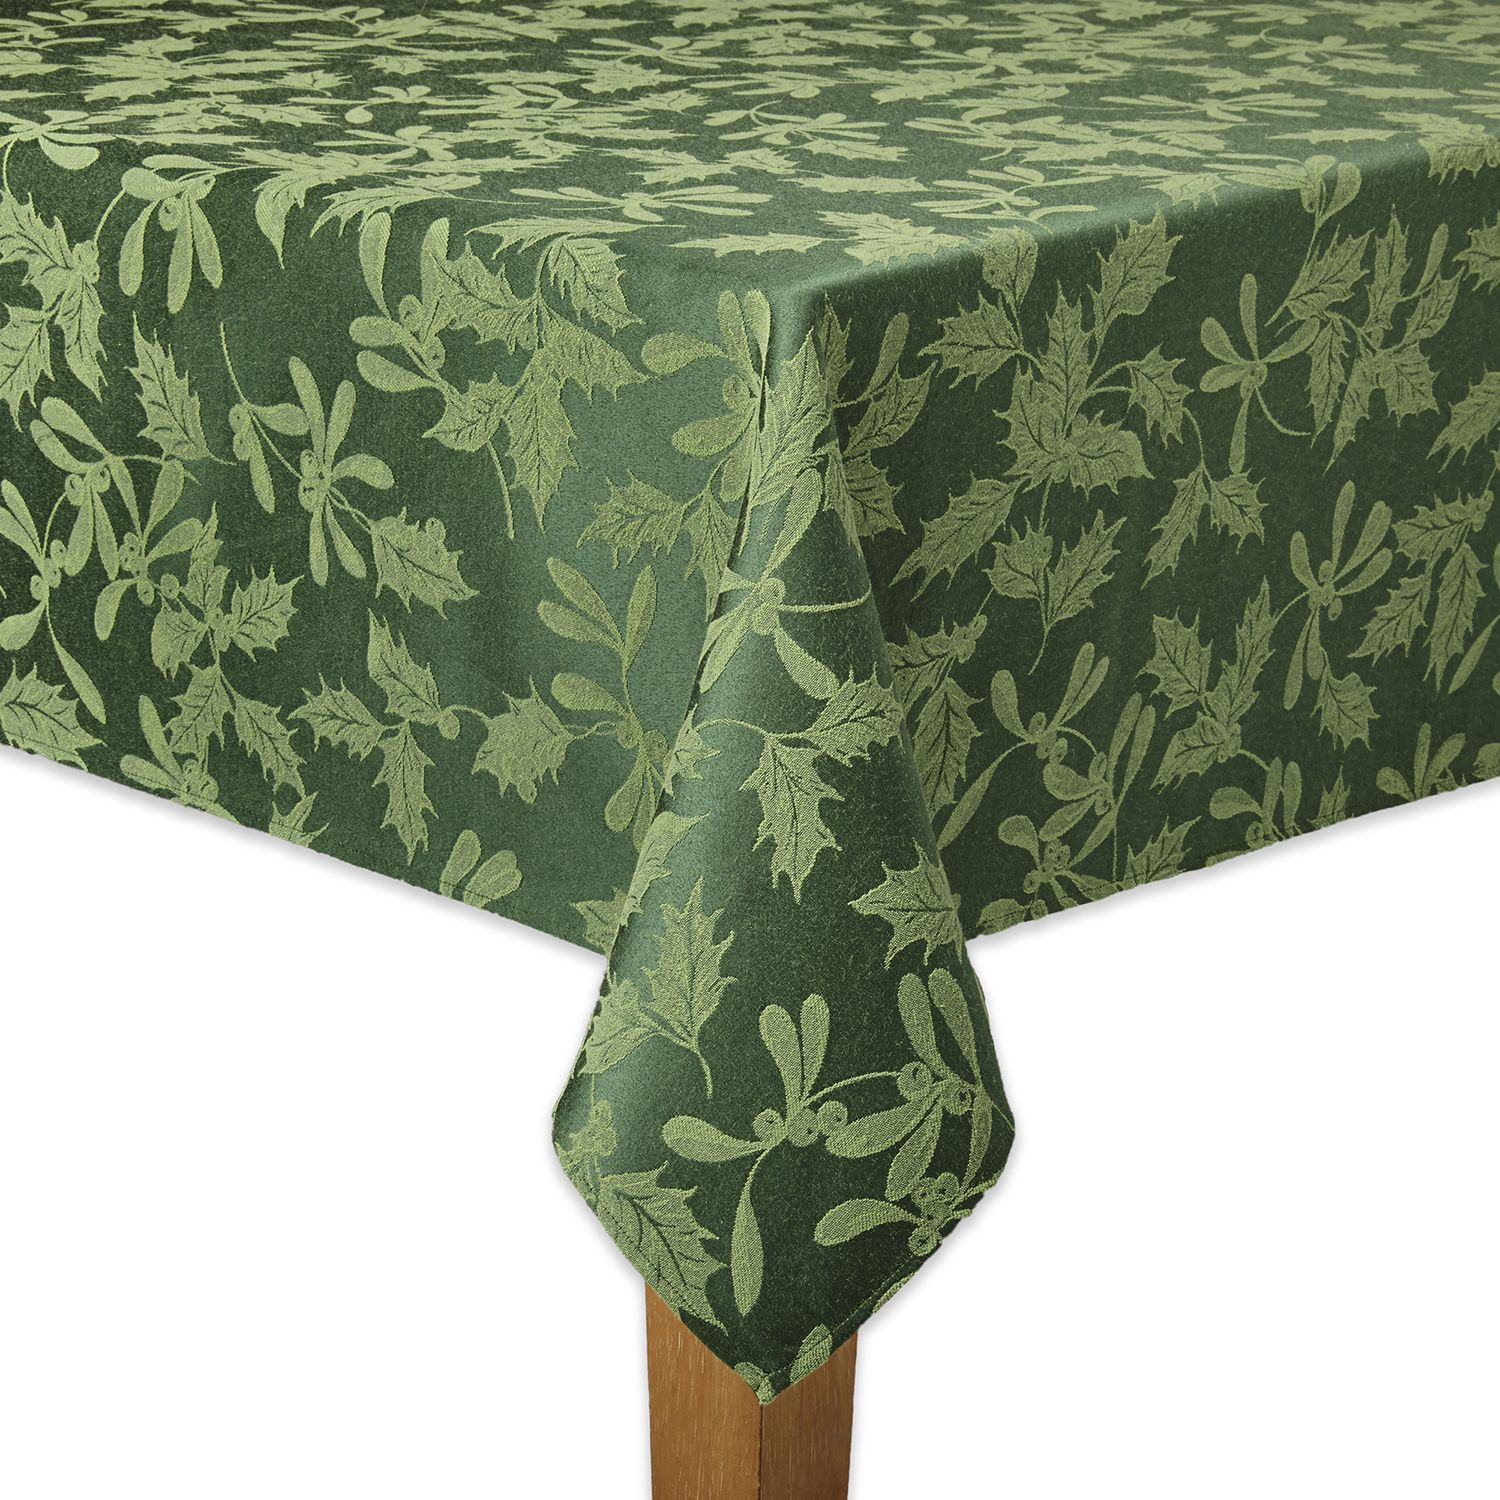 The Big One® Green Holly Tablecloth